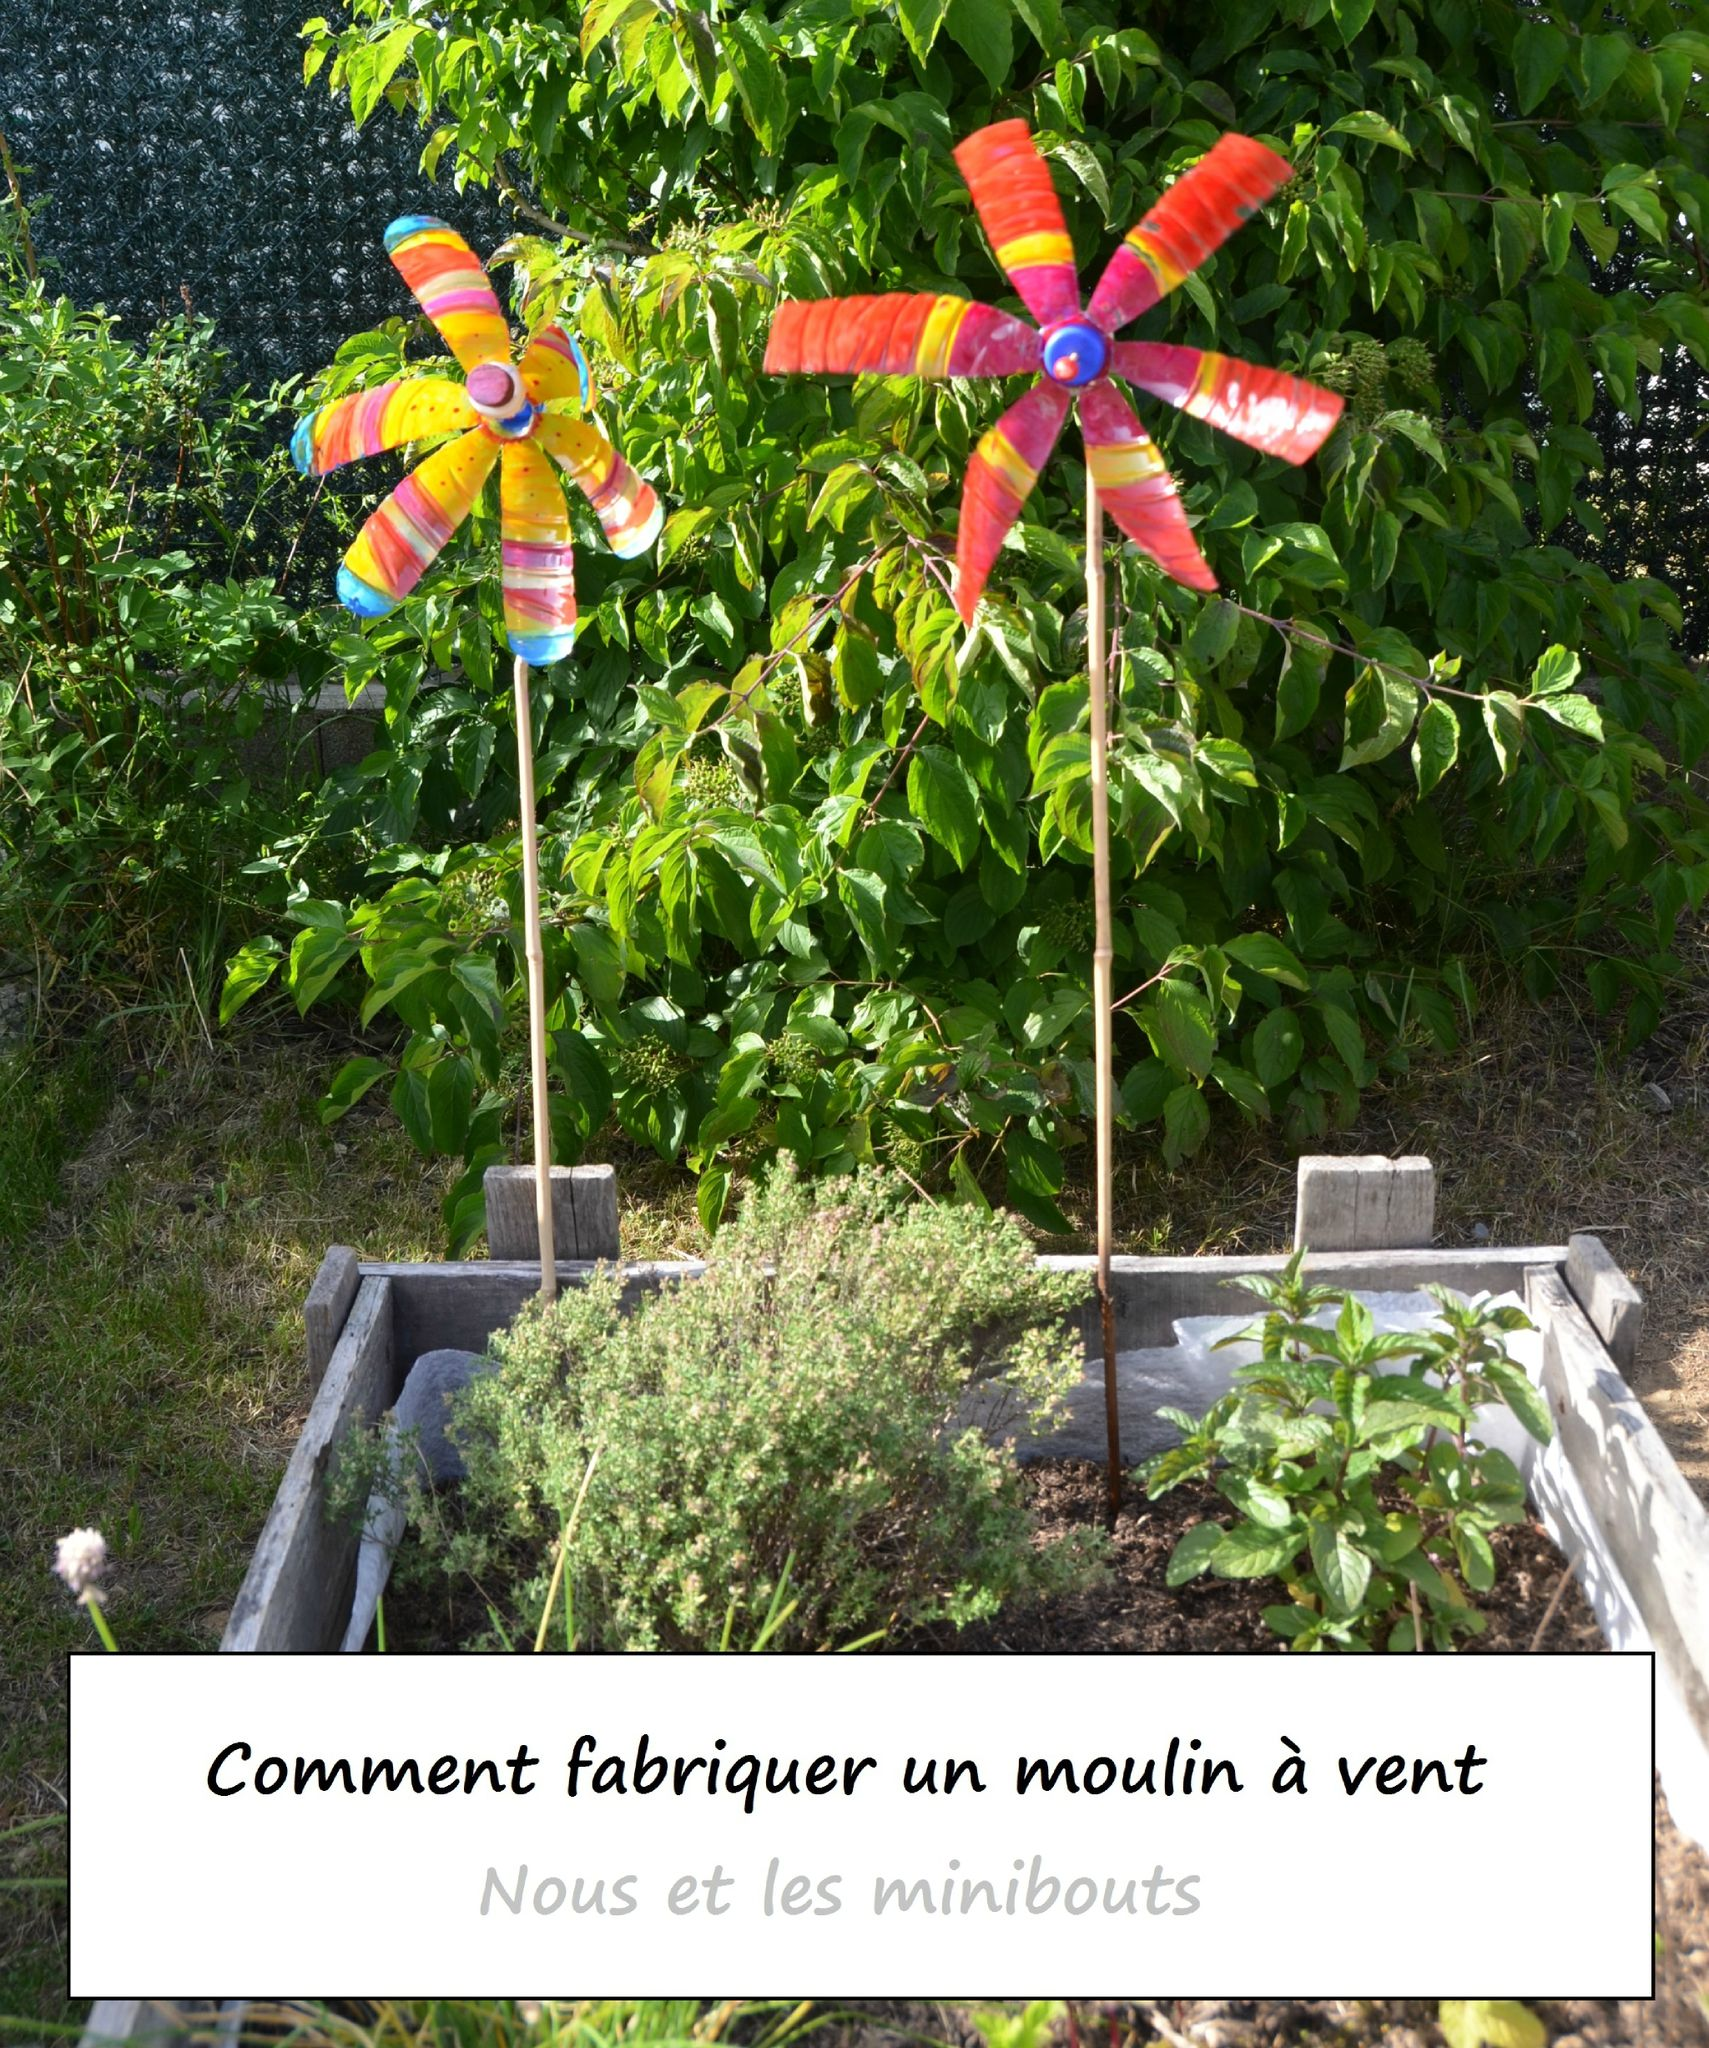 diy comment fabriquer un moulin vent avec des mat riaux recycl s nous et les minibouts. Black Bedroom Furniture Sets. Home Design Ideas